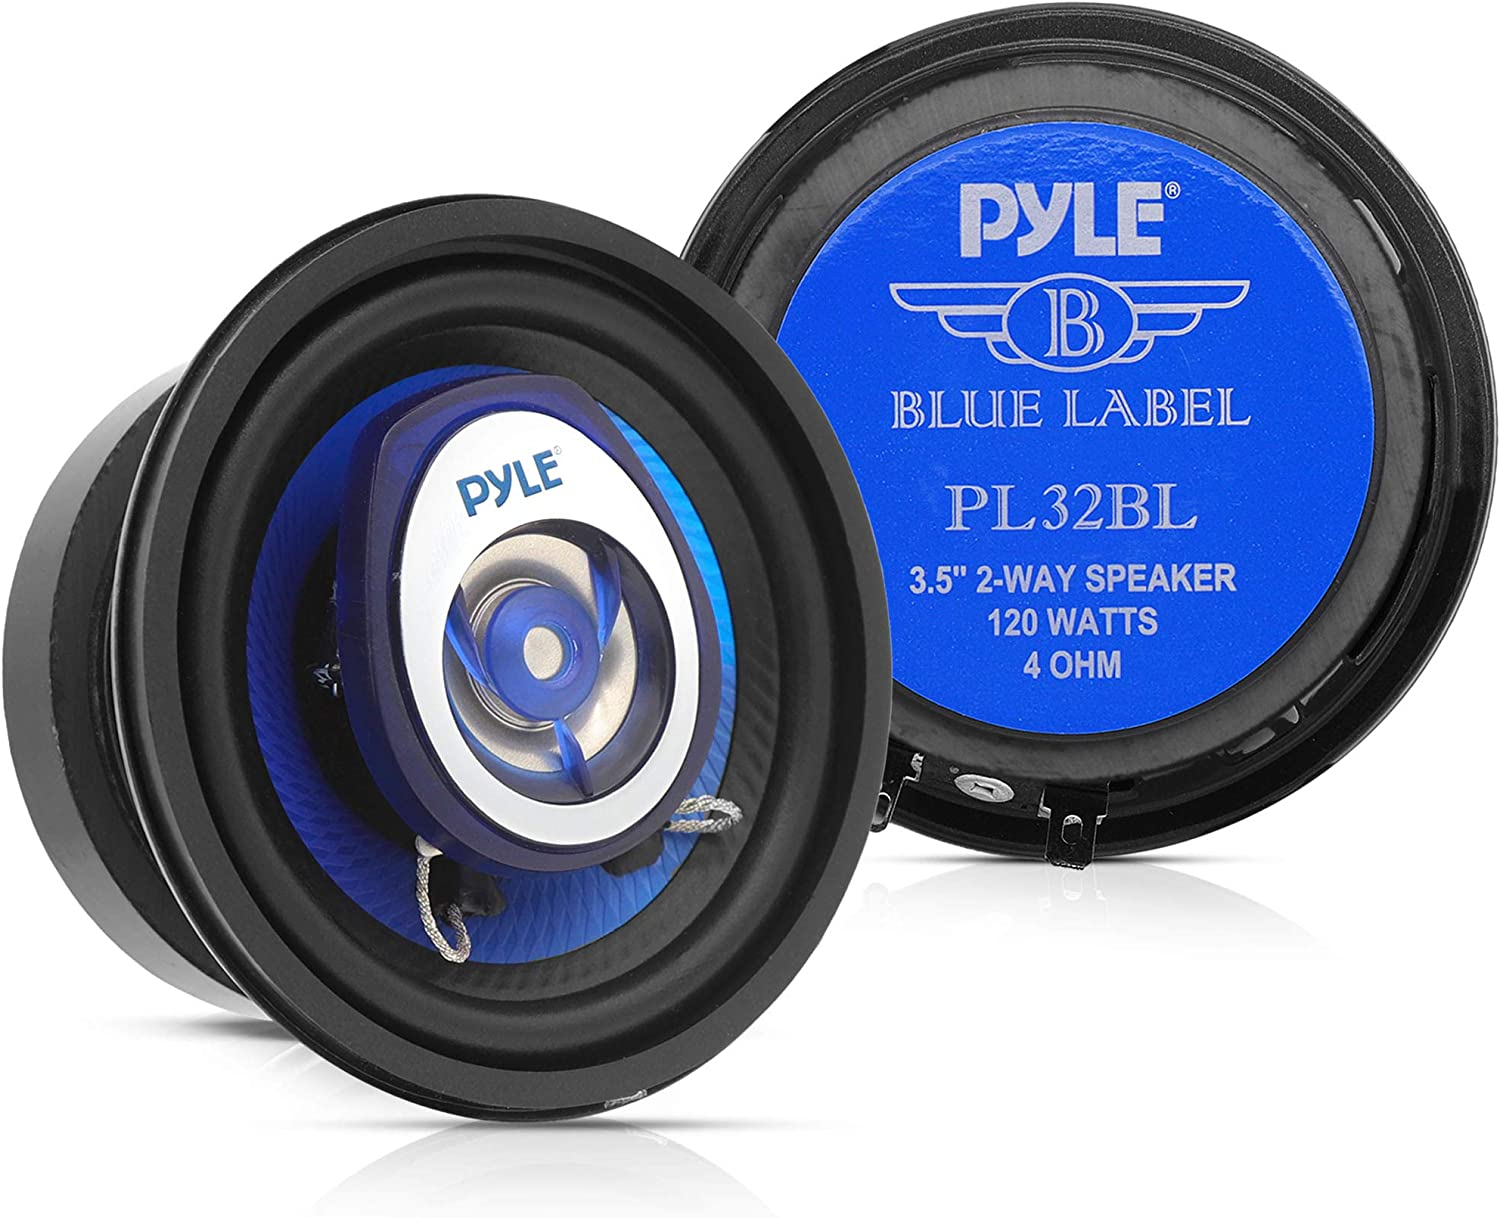 Pyle Car Sound Speaker